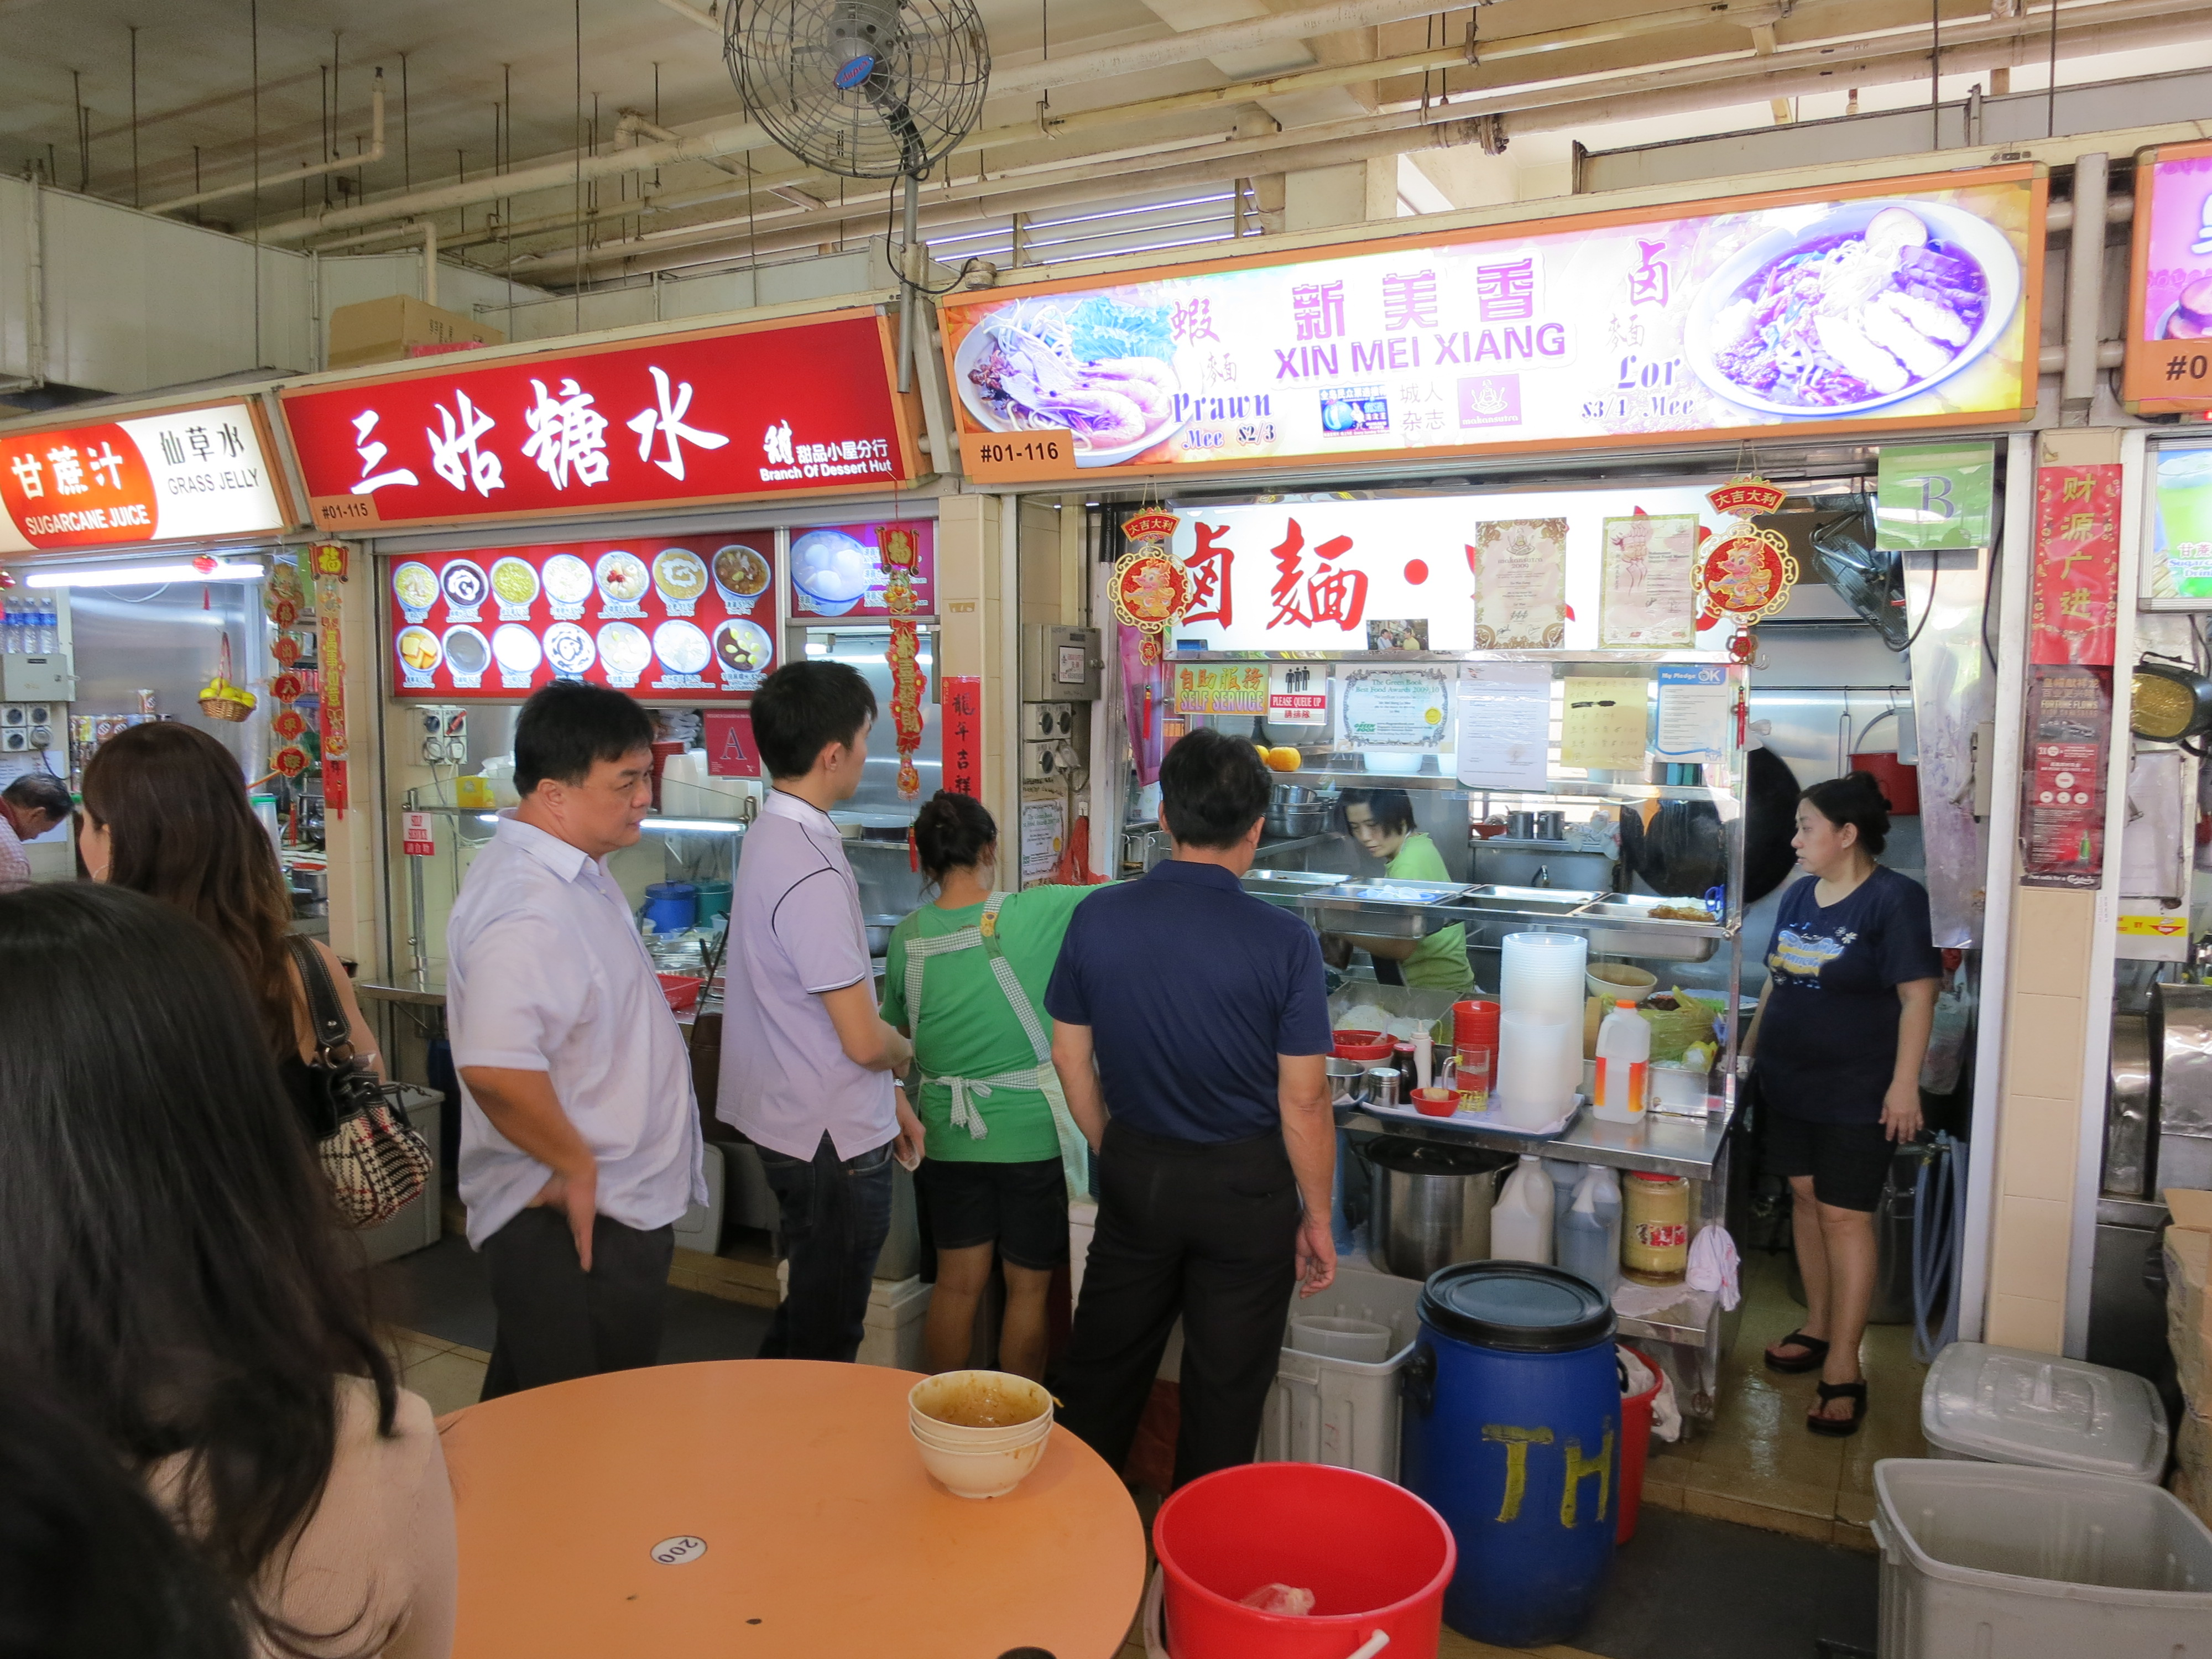 Food 3 – Waiting in line for my Xin Mei Xiang Lor Mee | Temporarily Lost